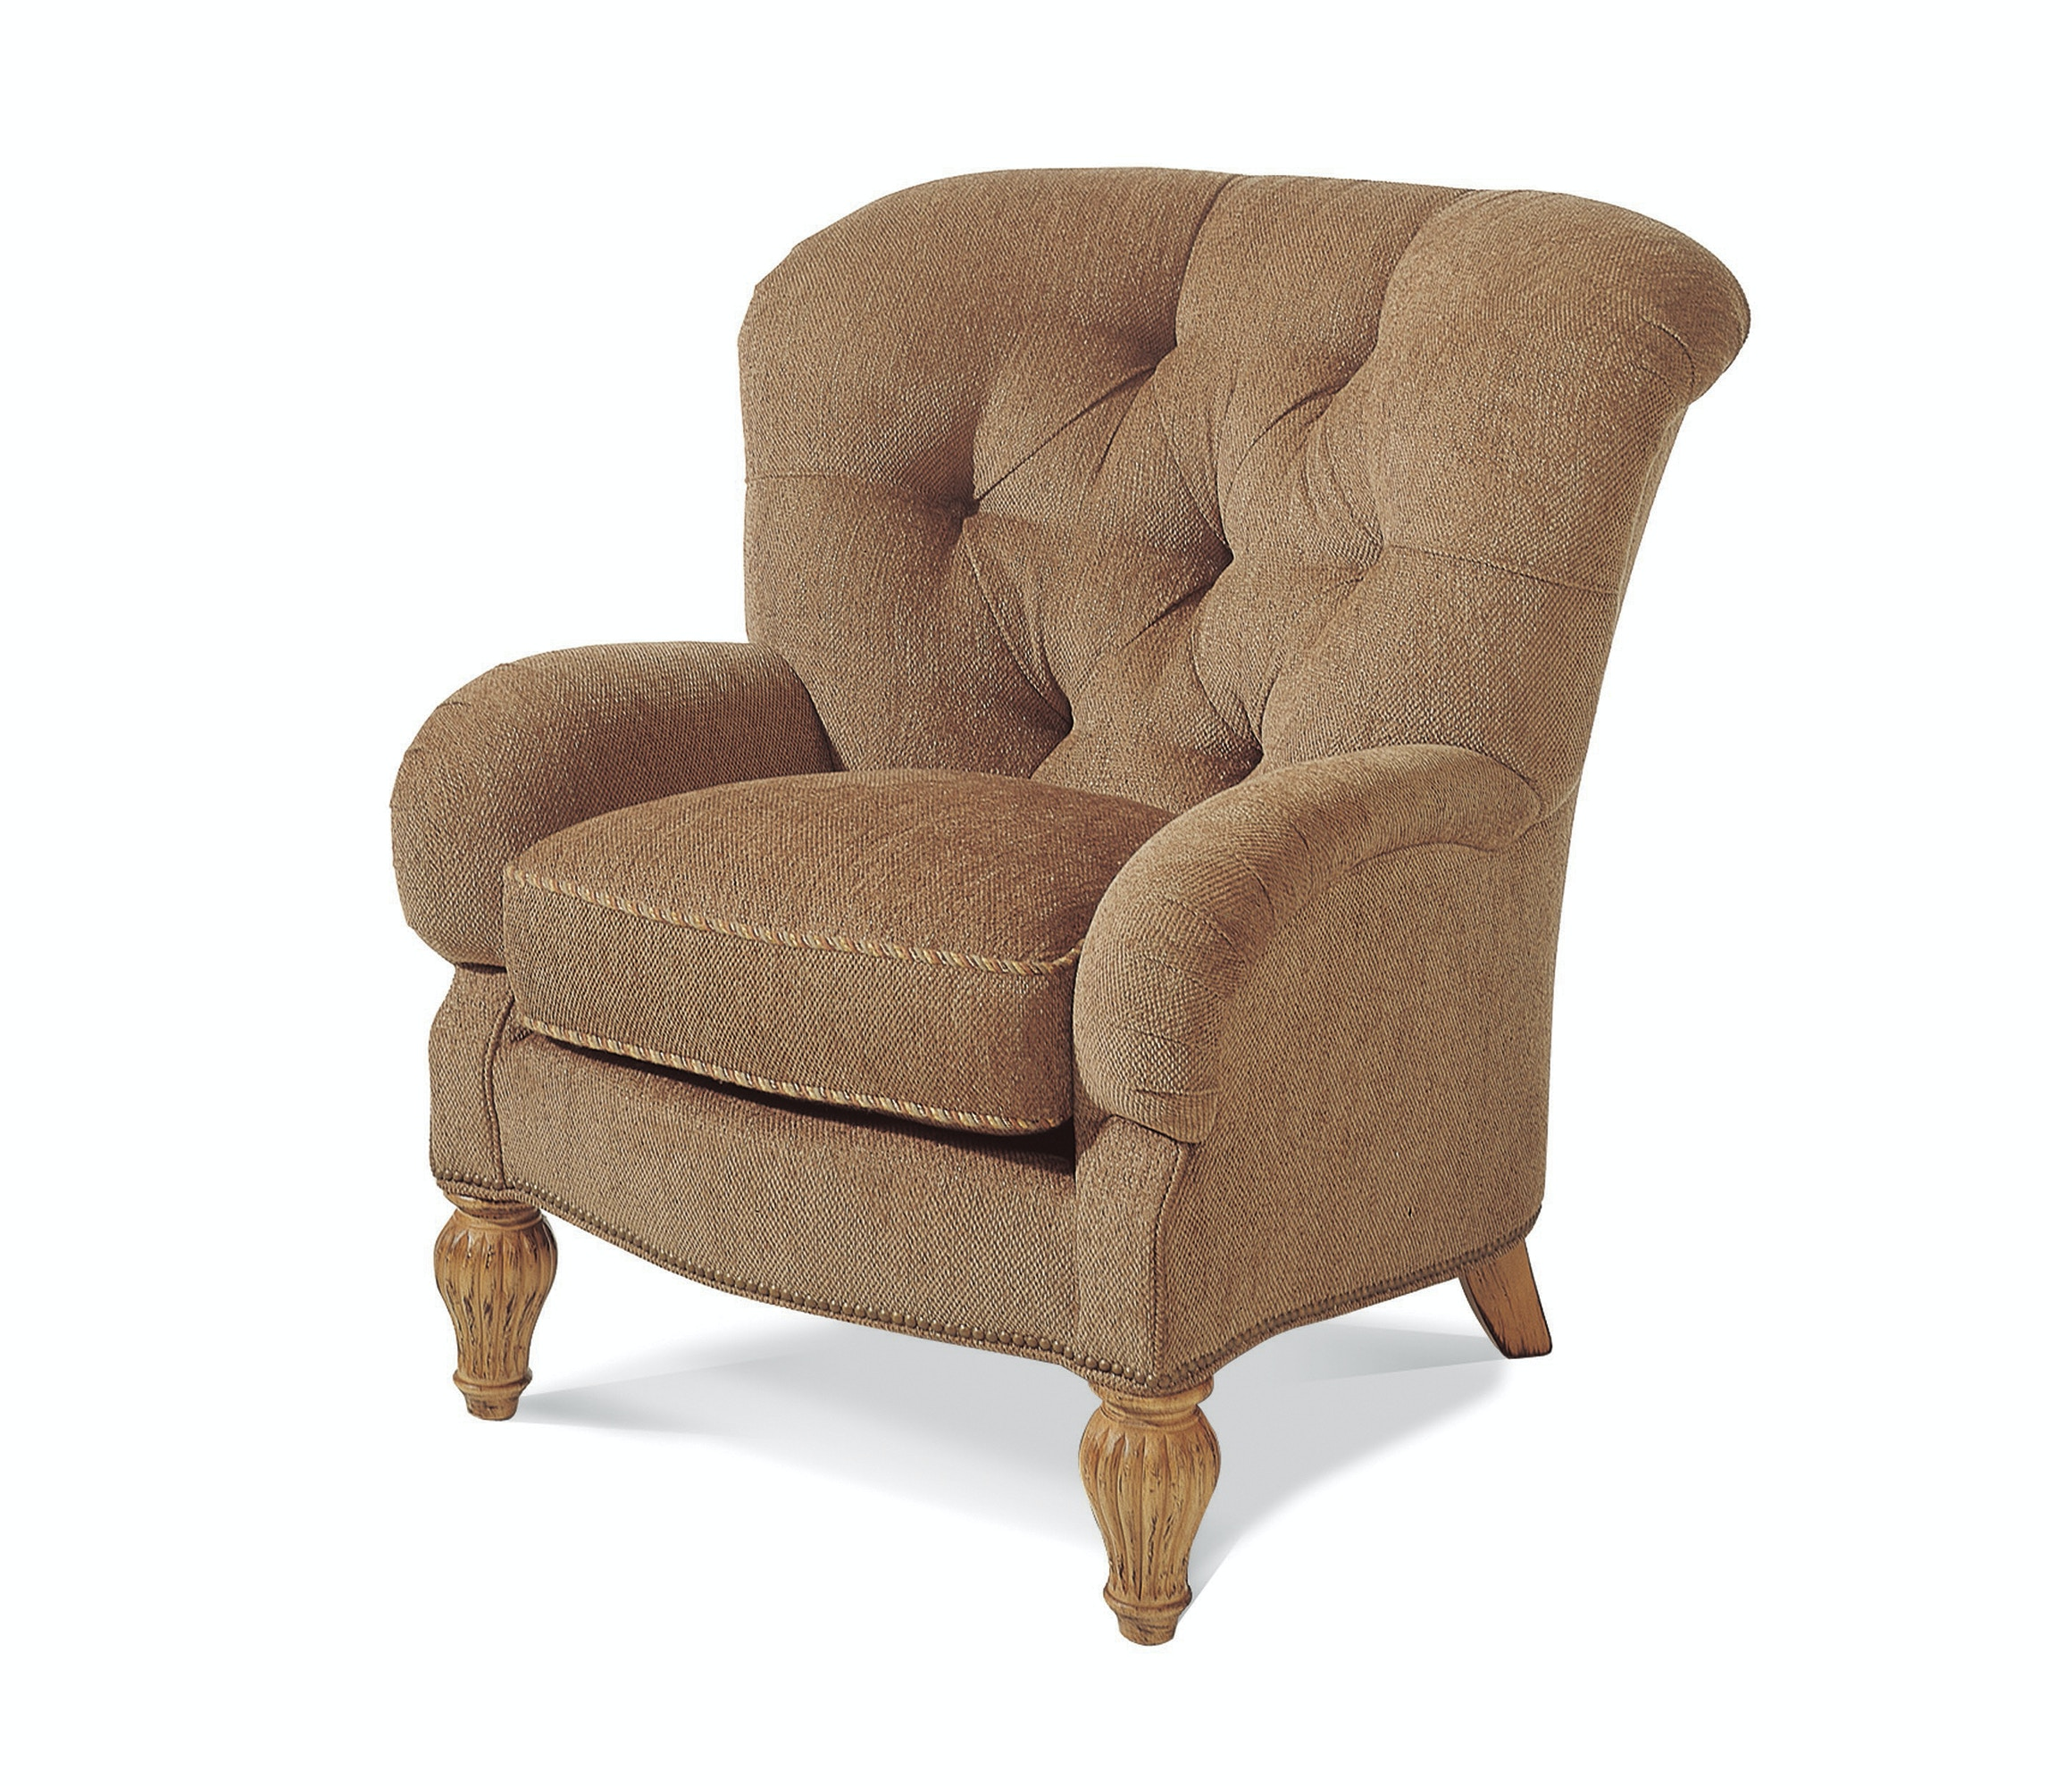 Taylor King Furniture Glasgow Chair 839